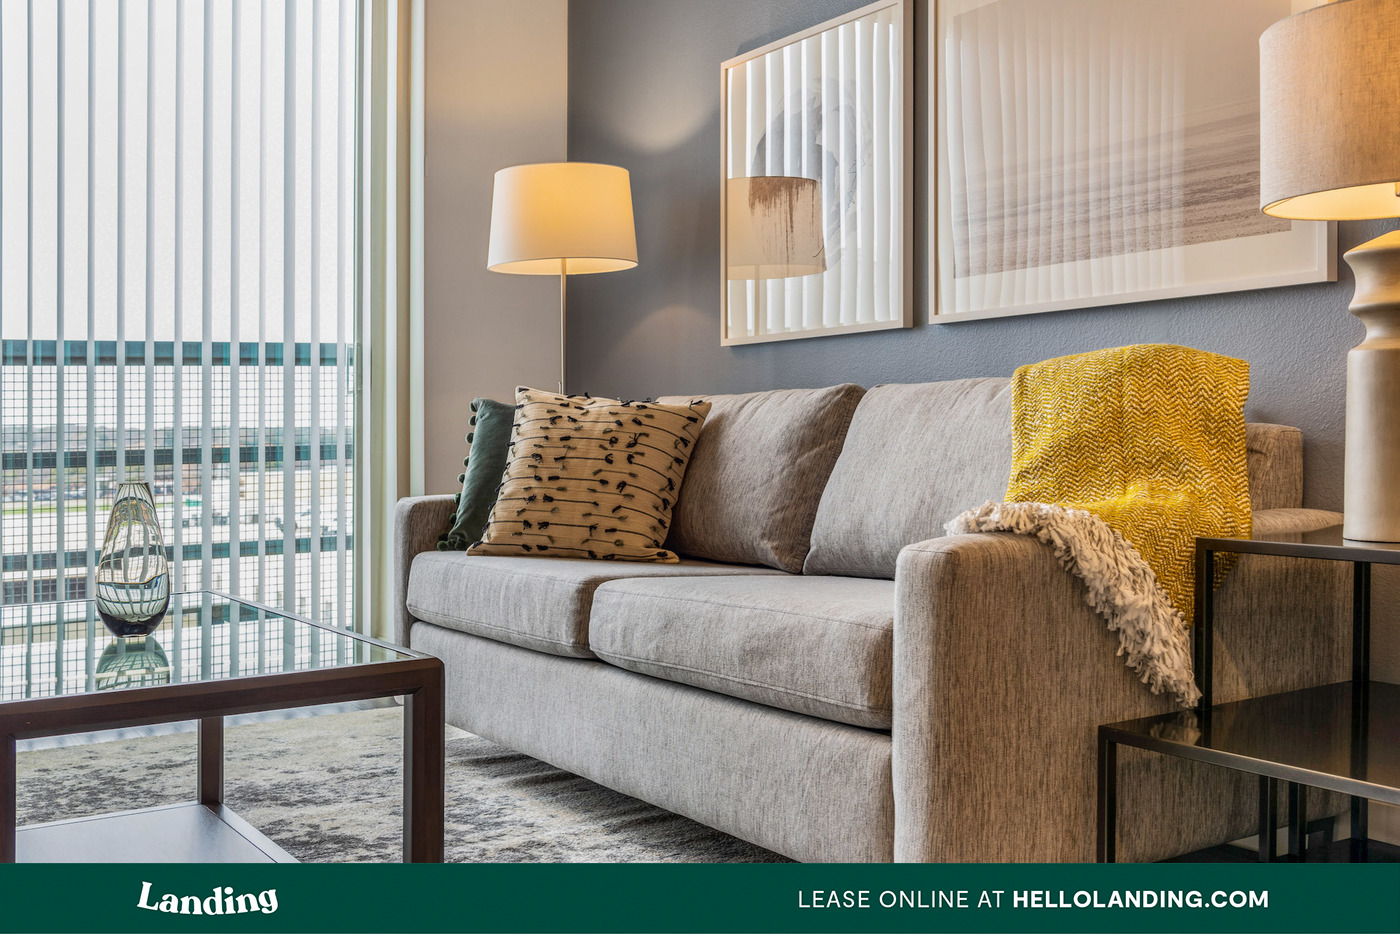 Landing Furnished Apartment The Addison at Collierville photo